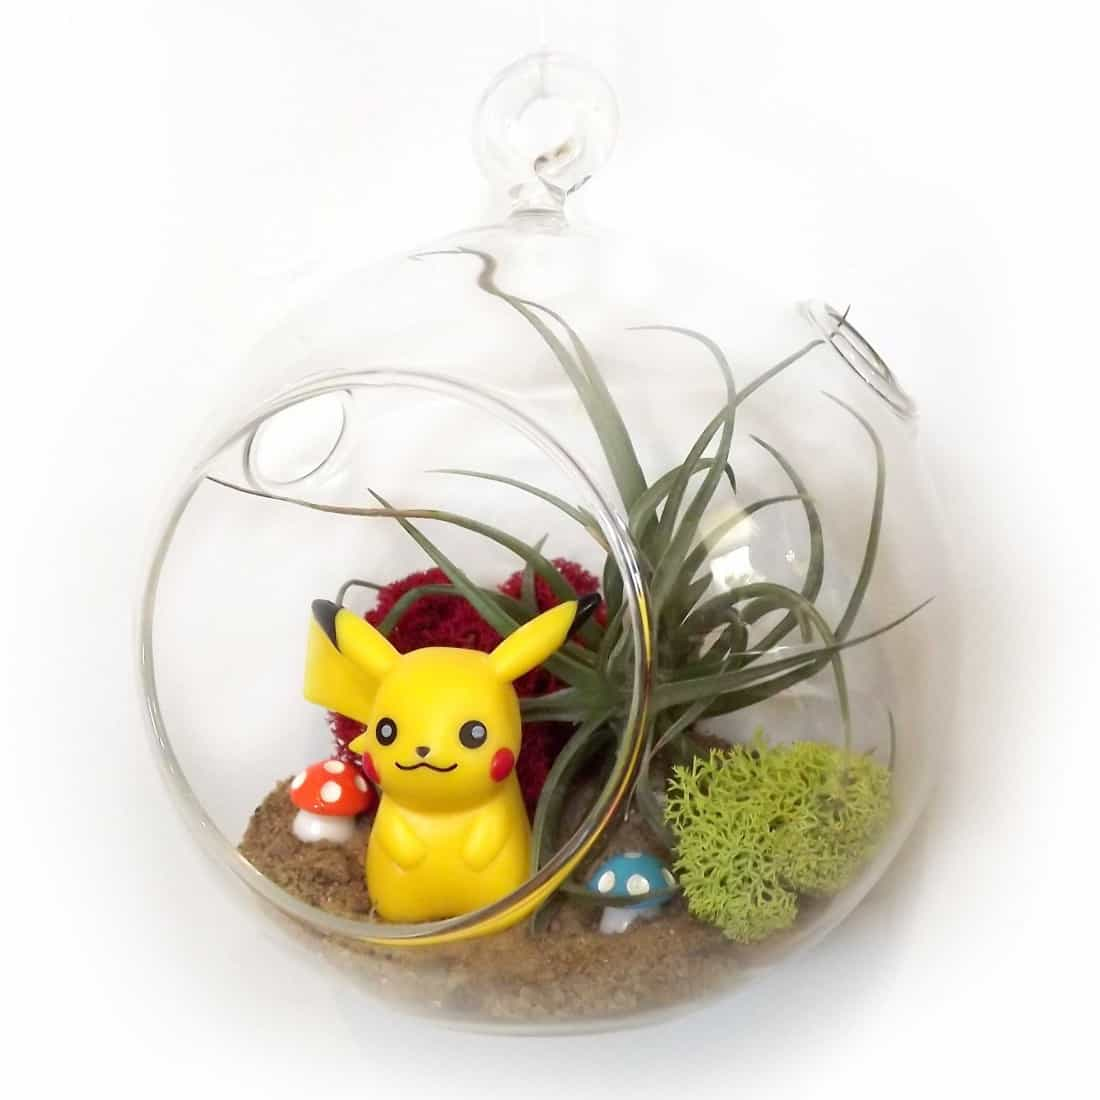 Pikachu,fairy garden,workshop,terrarium